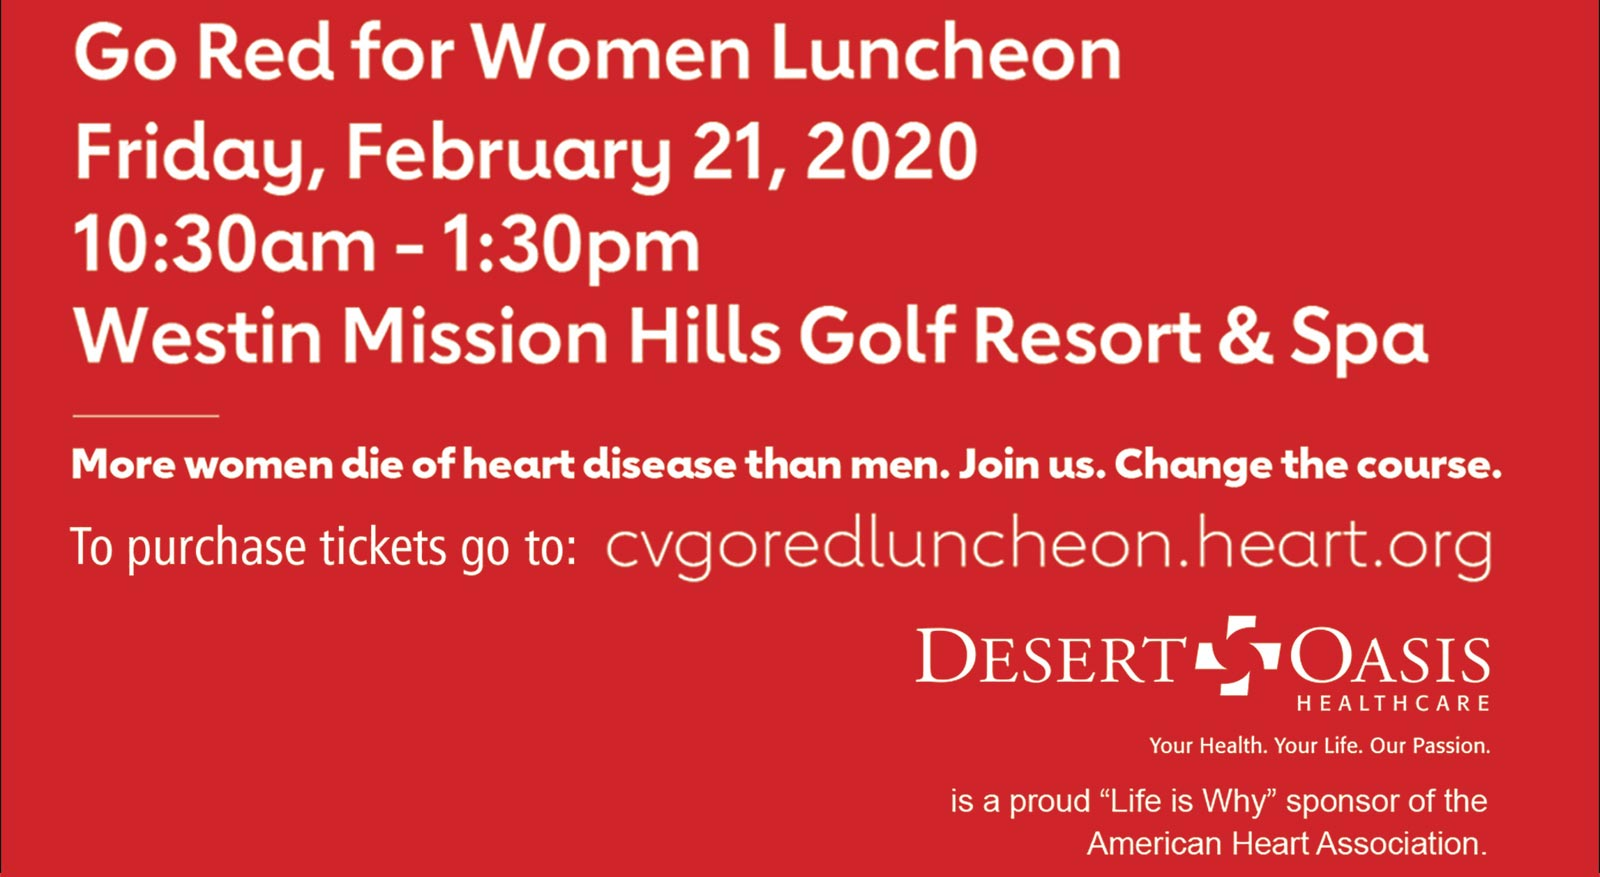 Newsletter | January 2020 | Go Red for Women Luncheon